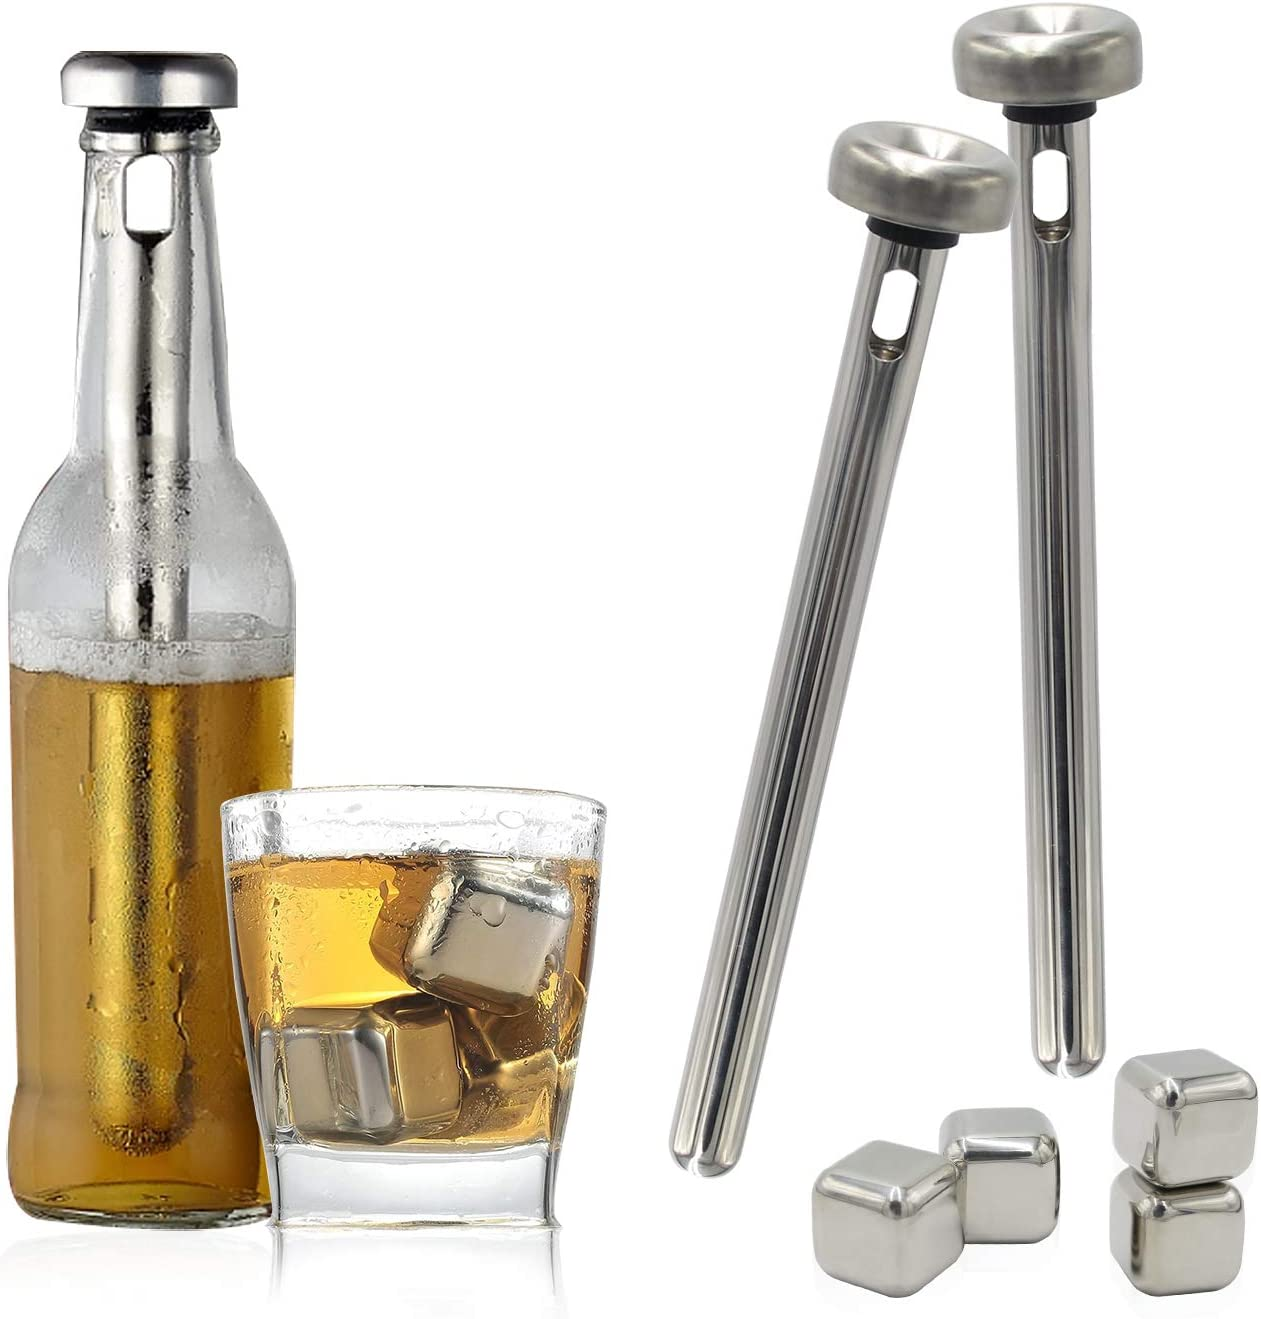 Beer Chiller Stick & Stainless Steel Ice Cube for Beer Wine Water Beverage Cooling, 2 Sticks and 4 Ice Cube